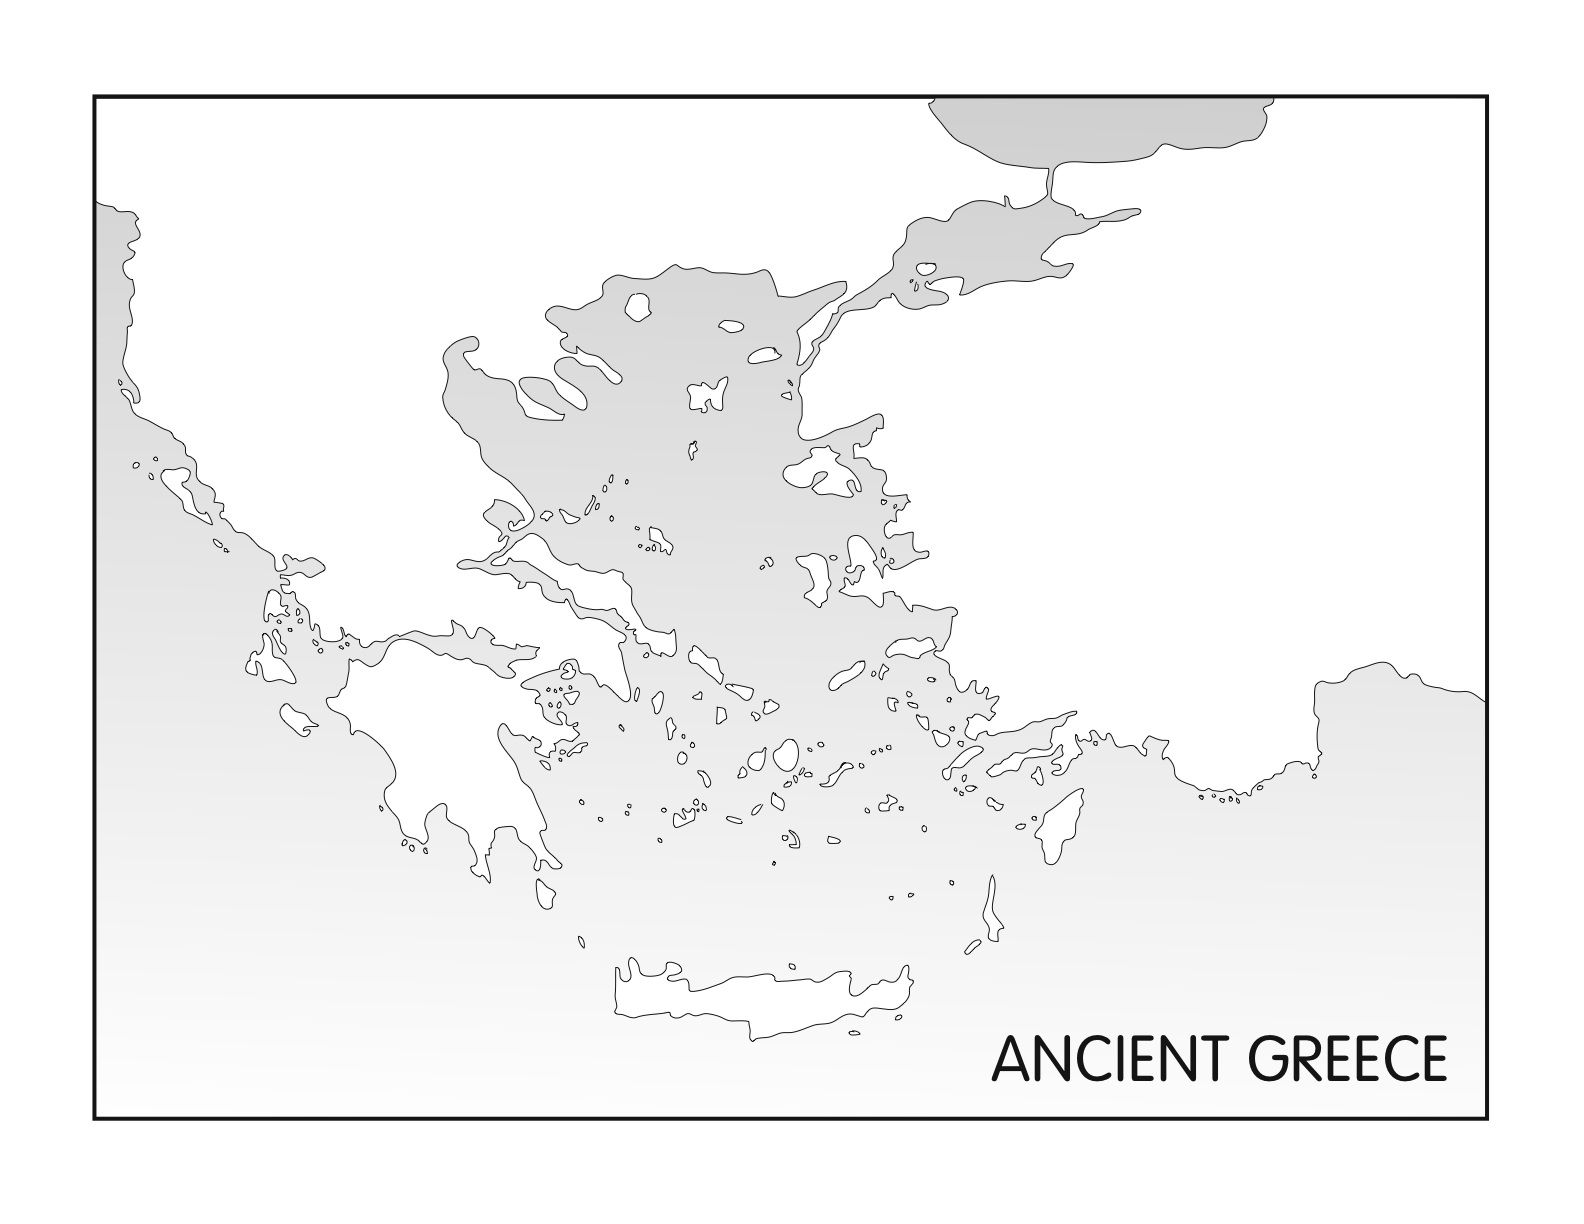 Worksheets Ancient Greece Map Worksheet outline maps ancient egypt and greece random pinterest my own downloadable for as i did not find any online that were what wanted hope they can be of